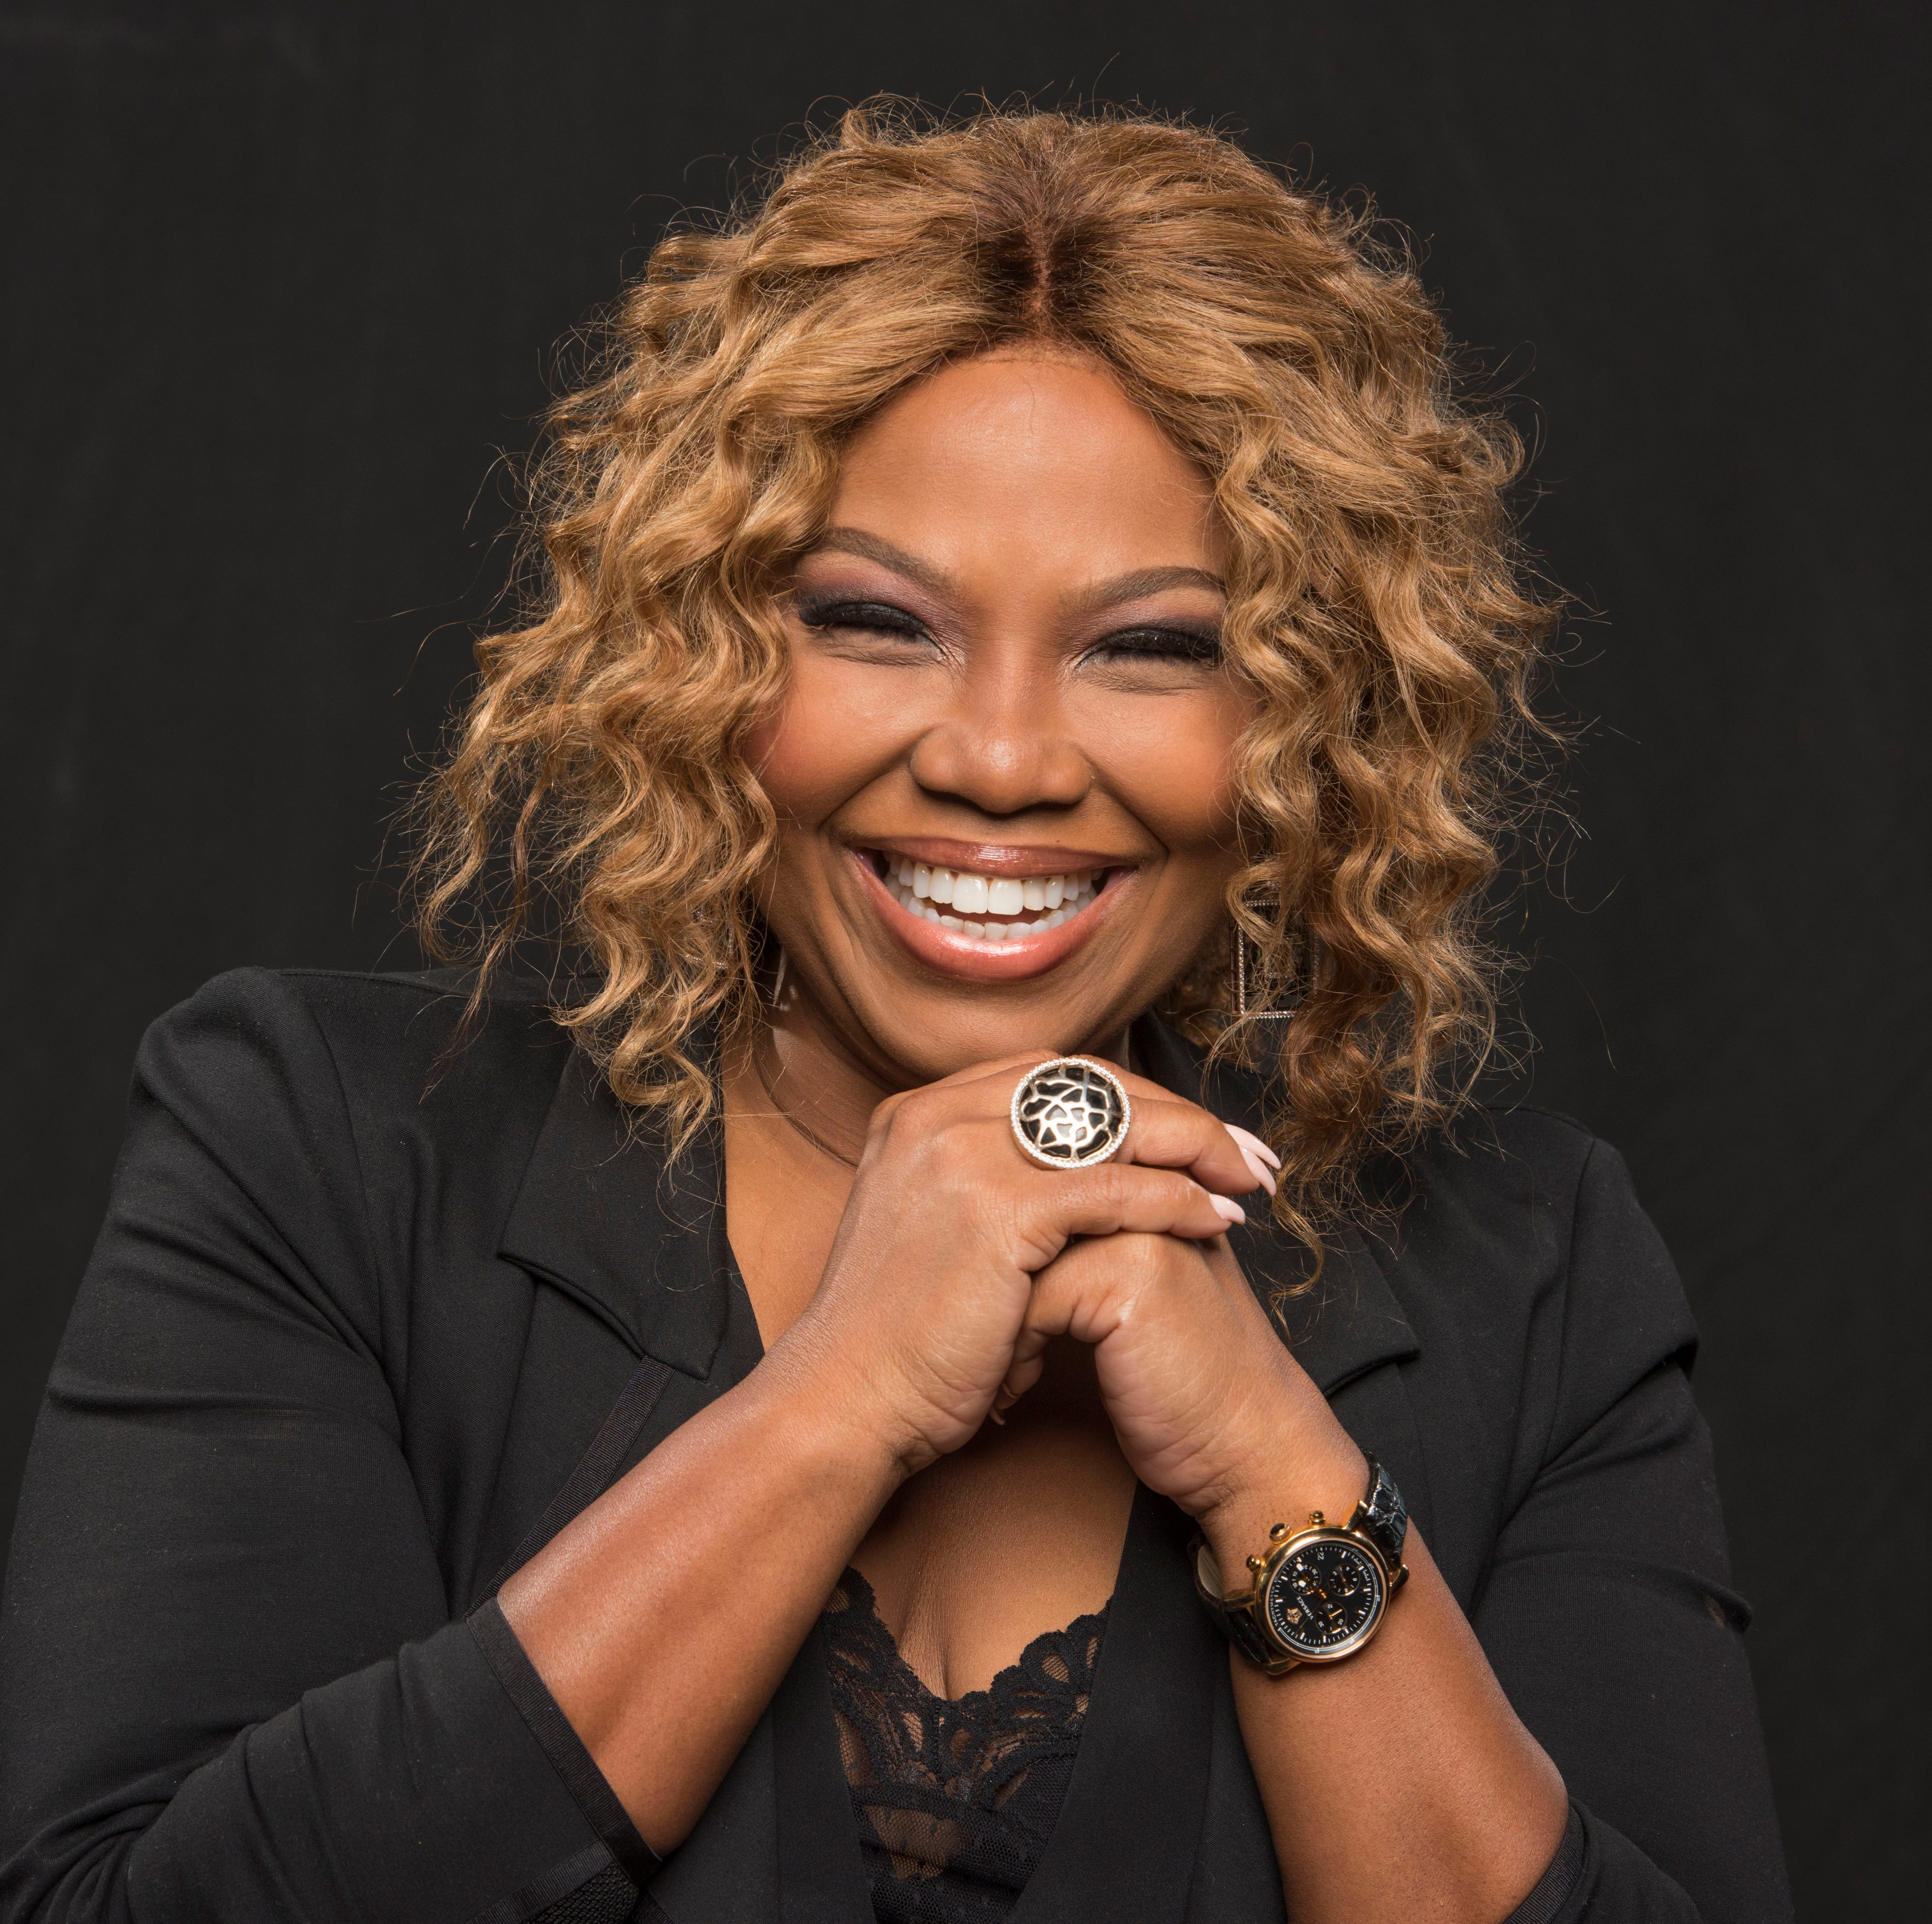 Mona Scott-Young's 'Love & Hip Hop' brand shows value of staying consistent